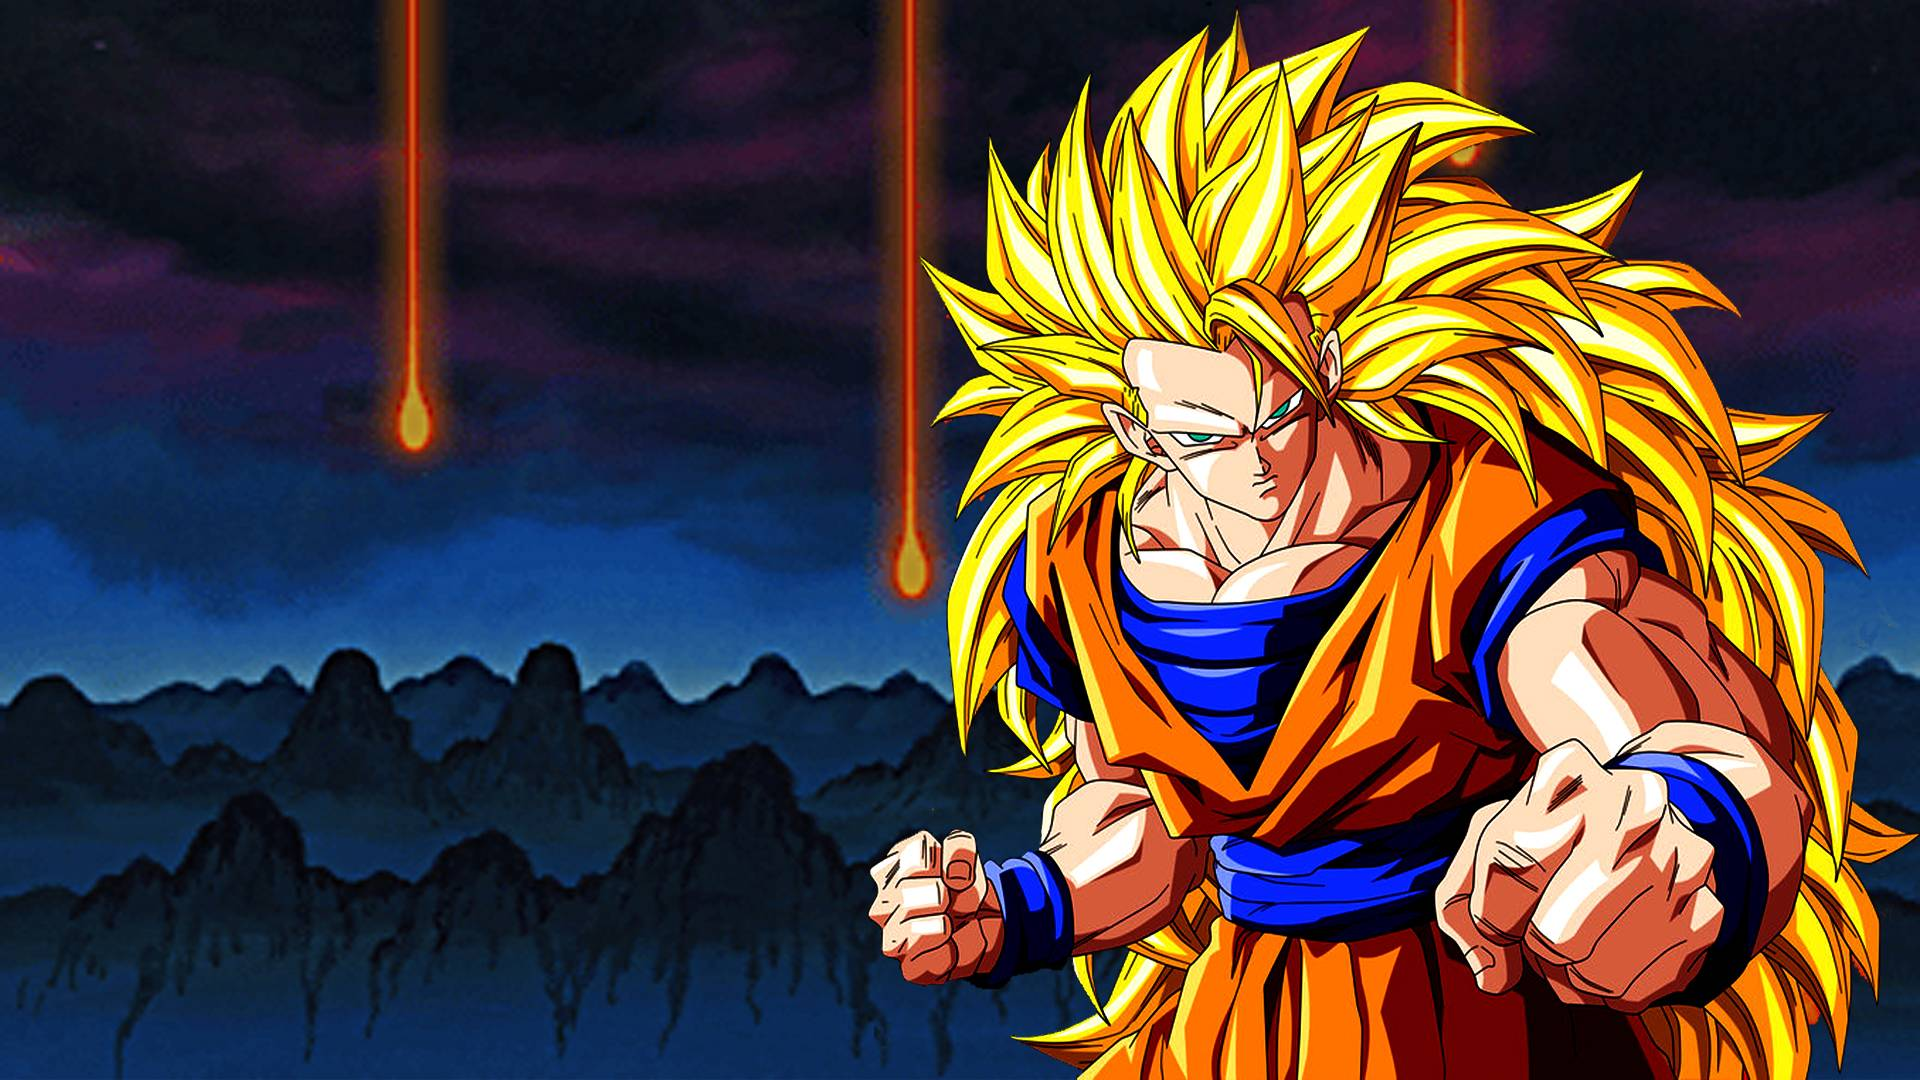 Dragon Ball Z Goku Wallpapers 1920x1080